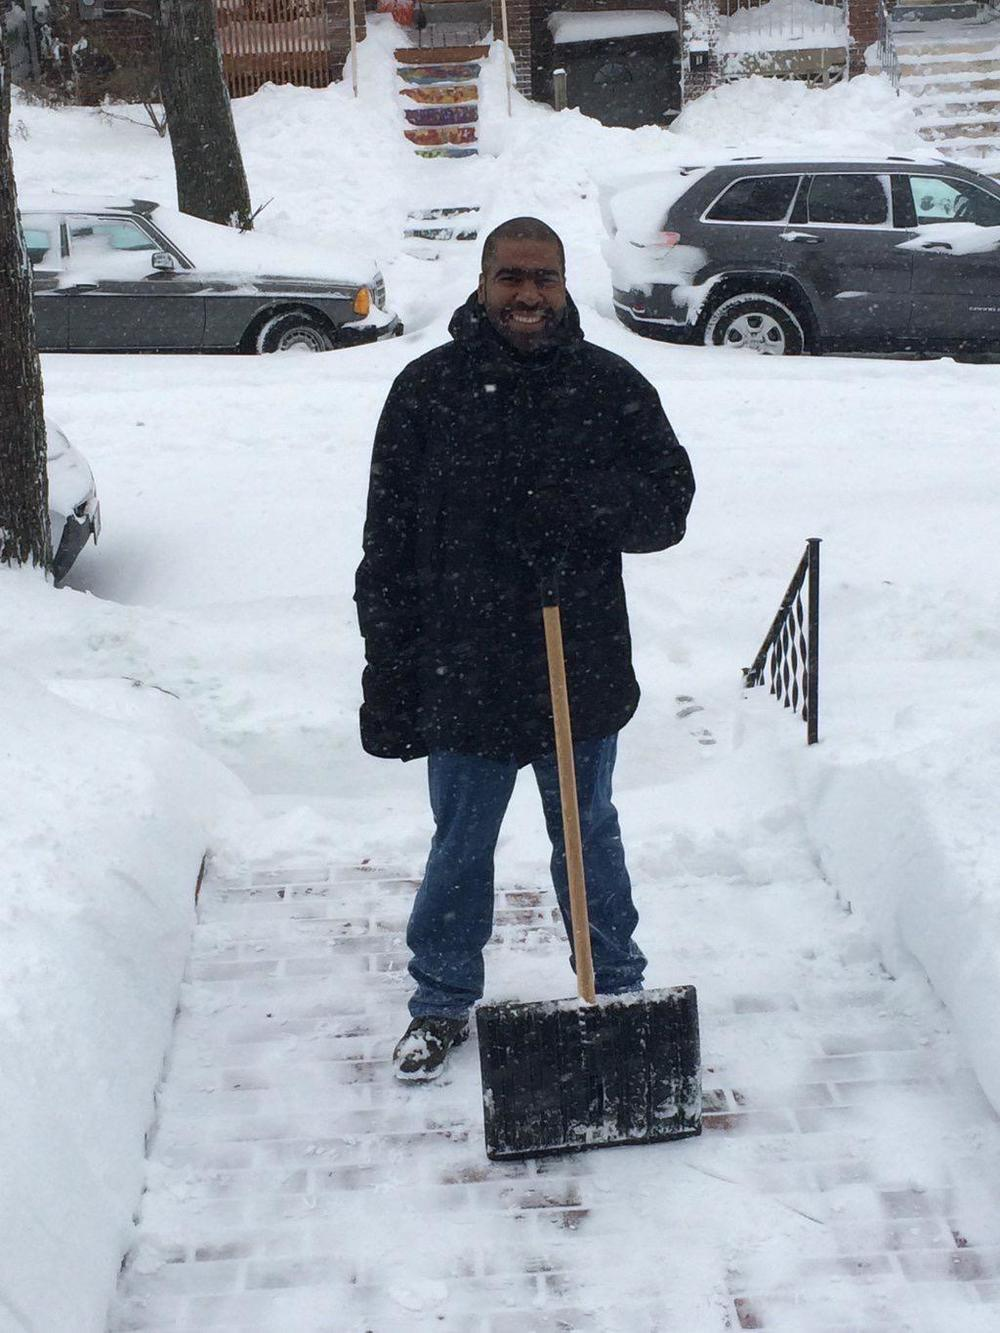 Shoveling, shoveling...  (photo: Julian Hipkins)